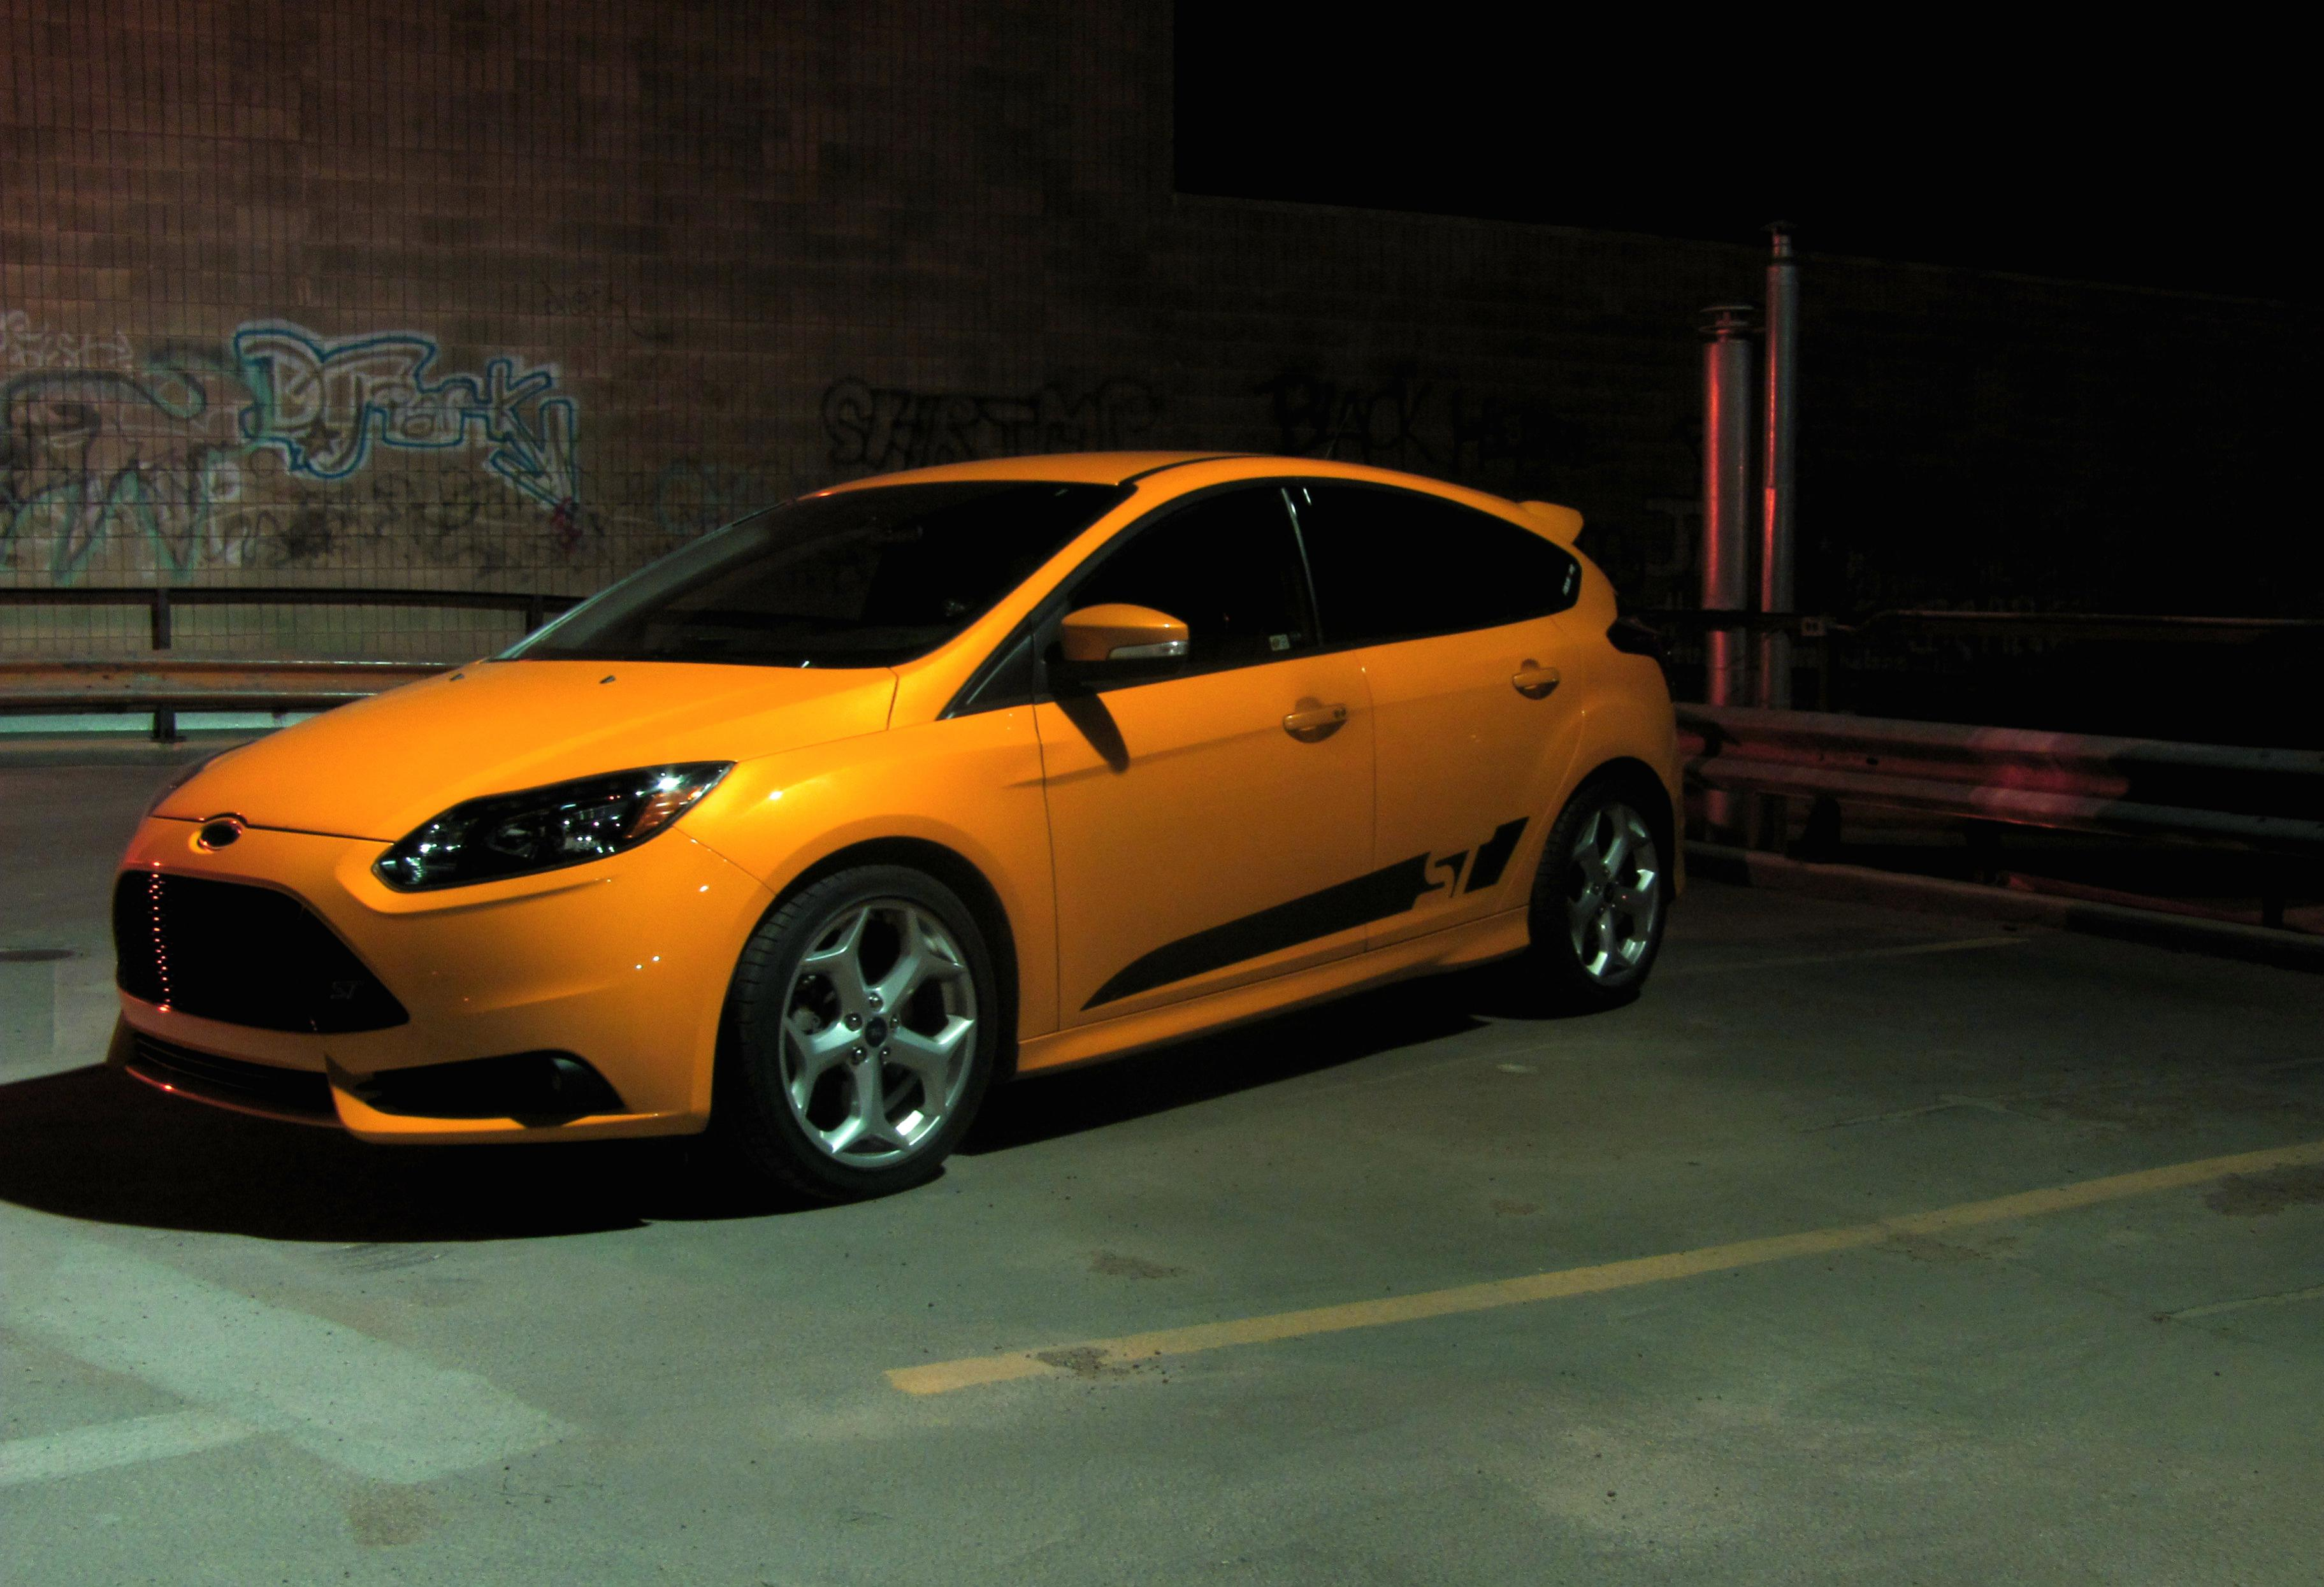 Focus St Tune >> May 2013 Focus ST of the Month Begins! - Page 5